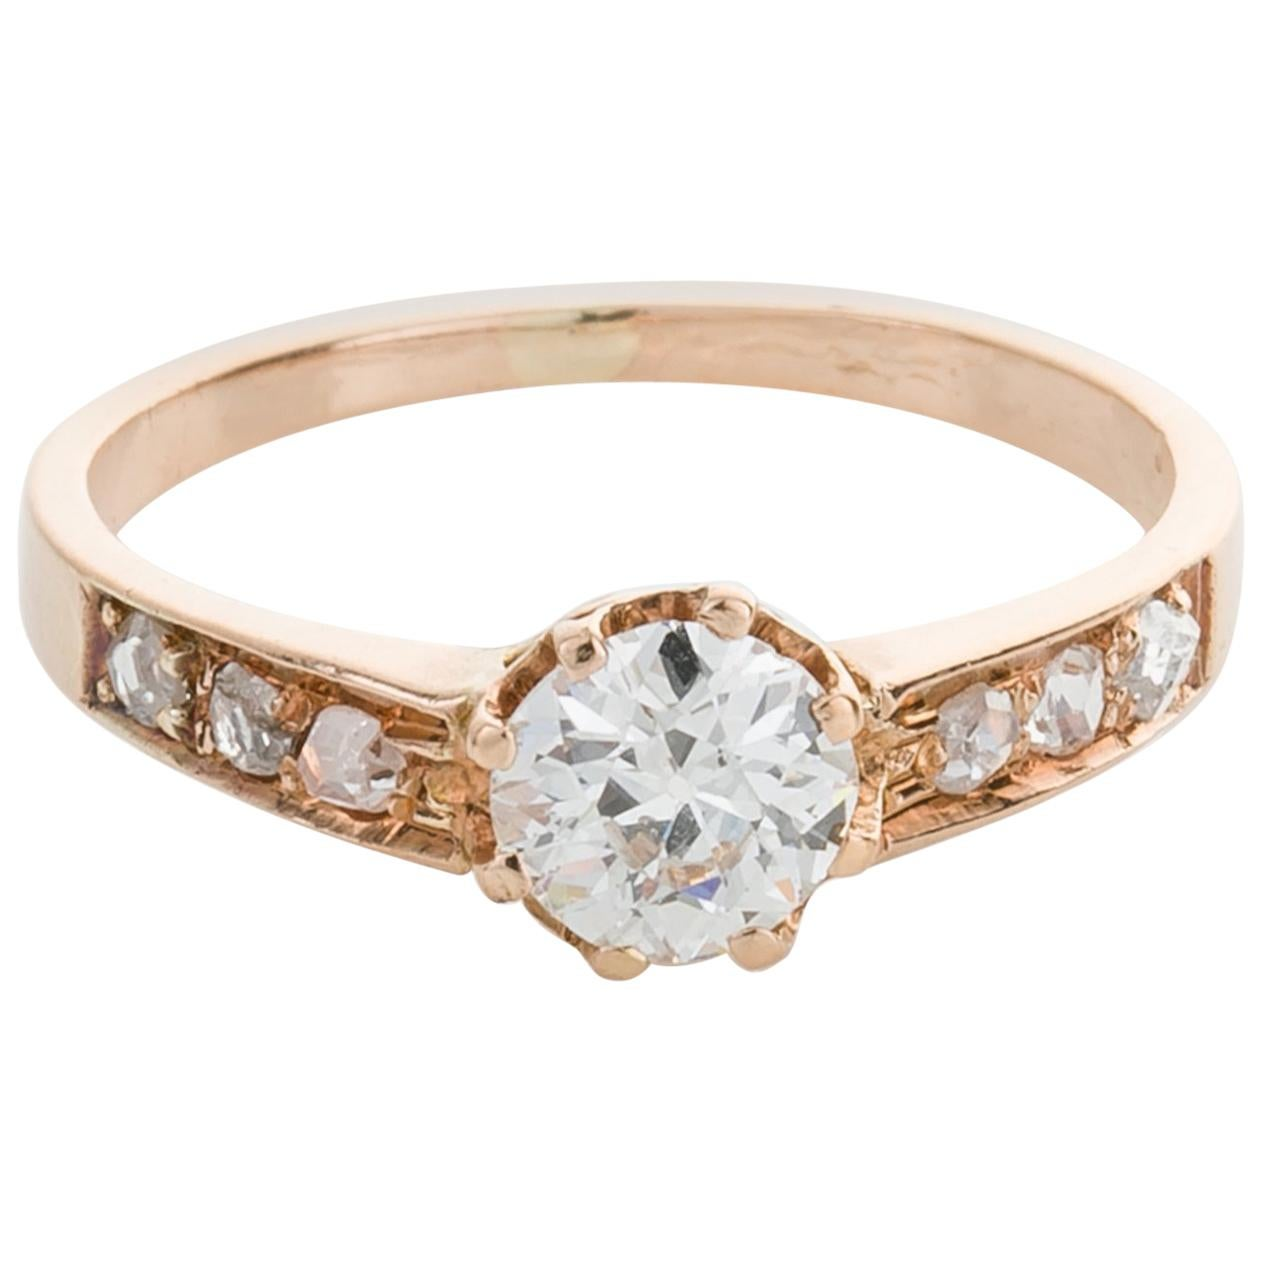 45f5dee8916a0 Antique 18k Gold Solitaire Rings - 1,099 For Sale at 1stdibs